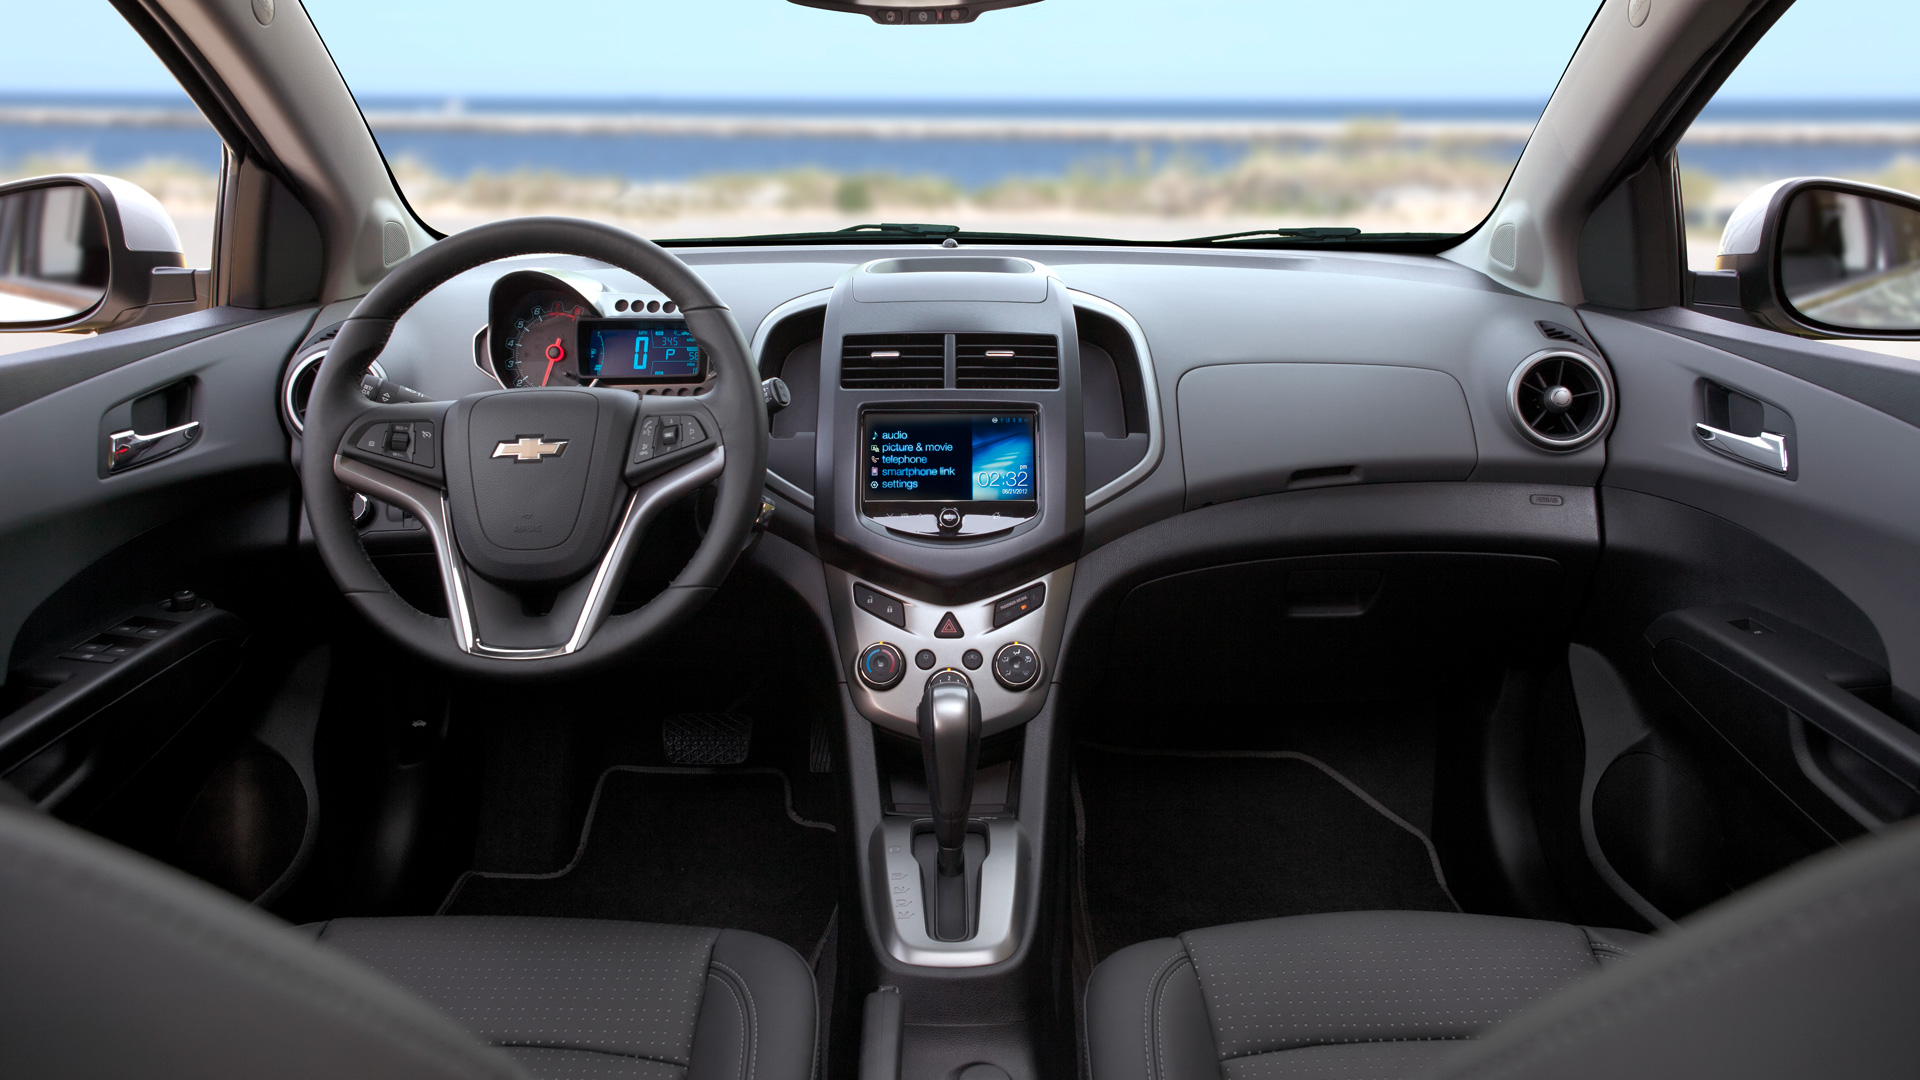 2014 Chevrolet Sonic | Top Speed. » Amazing Ideas